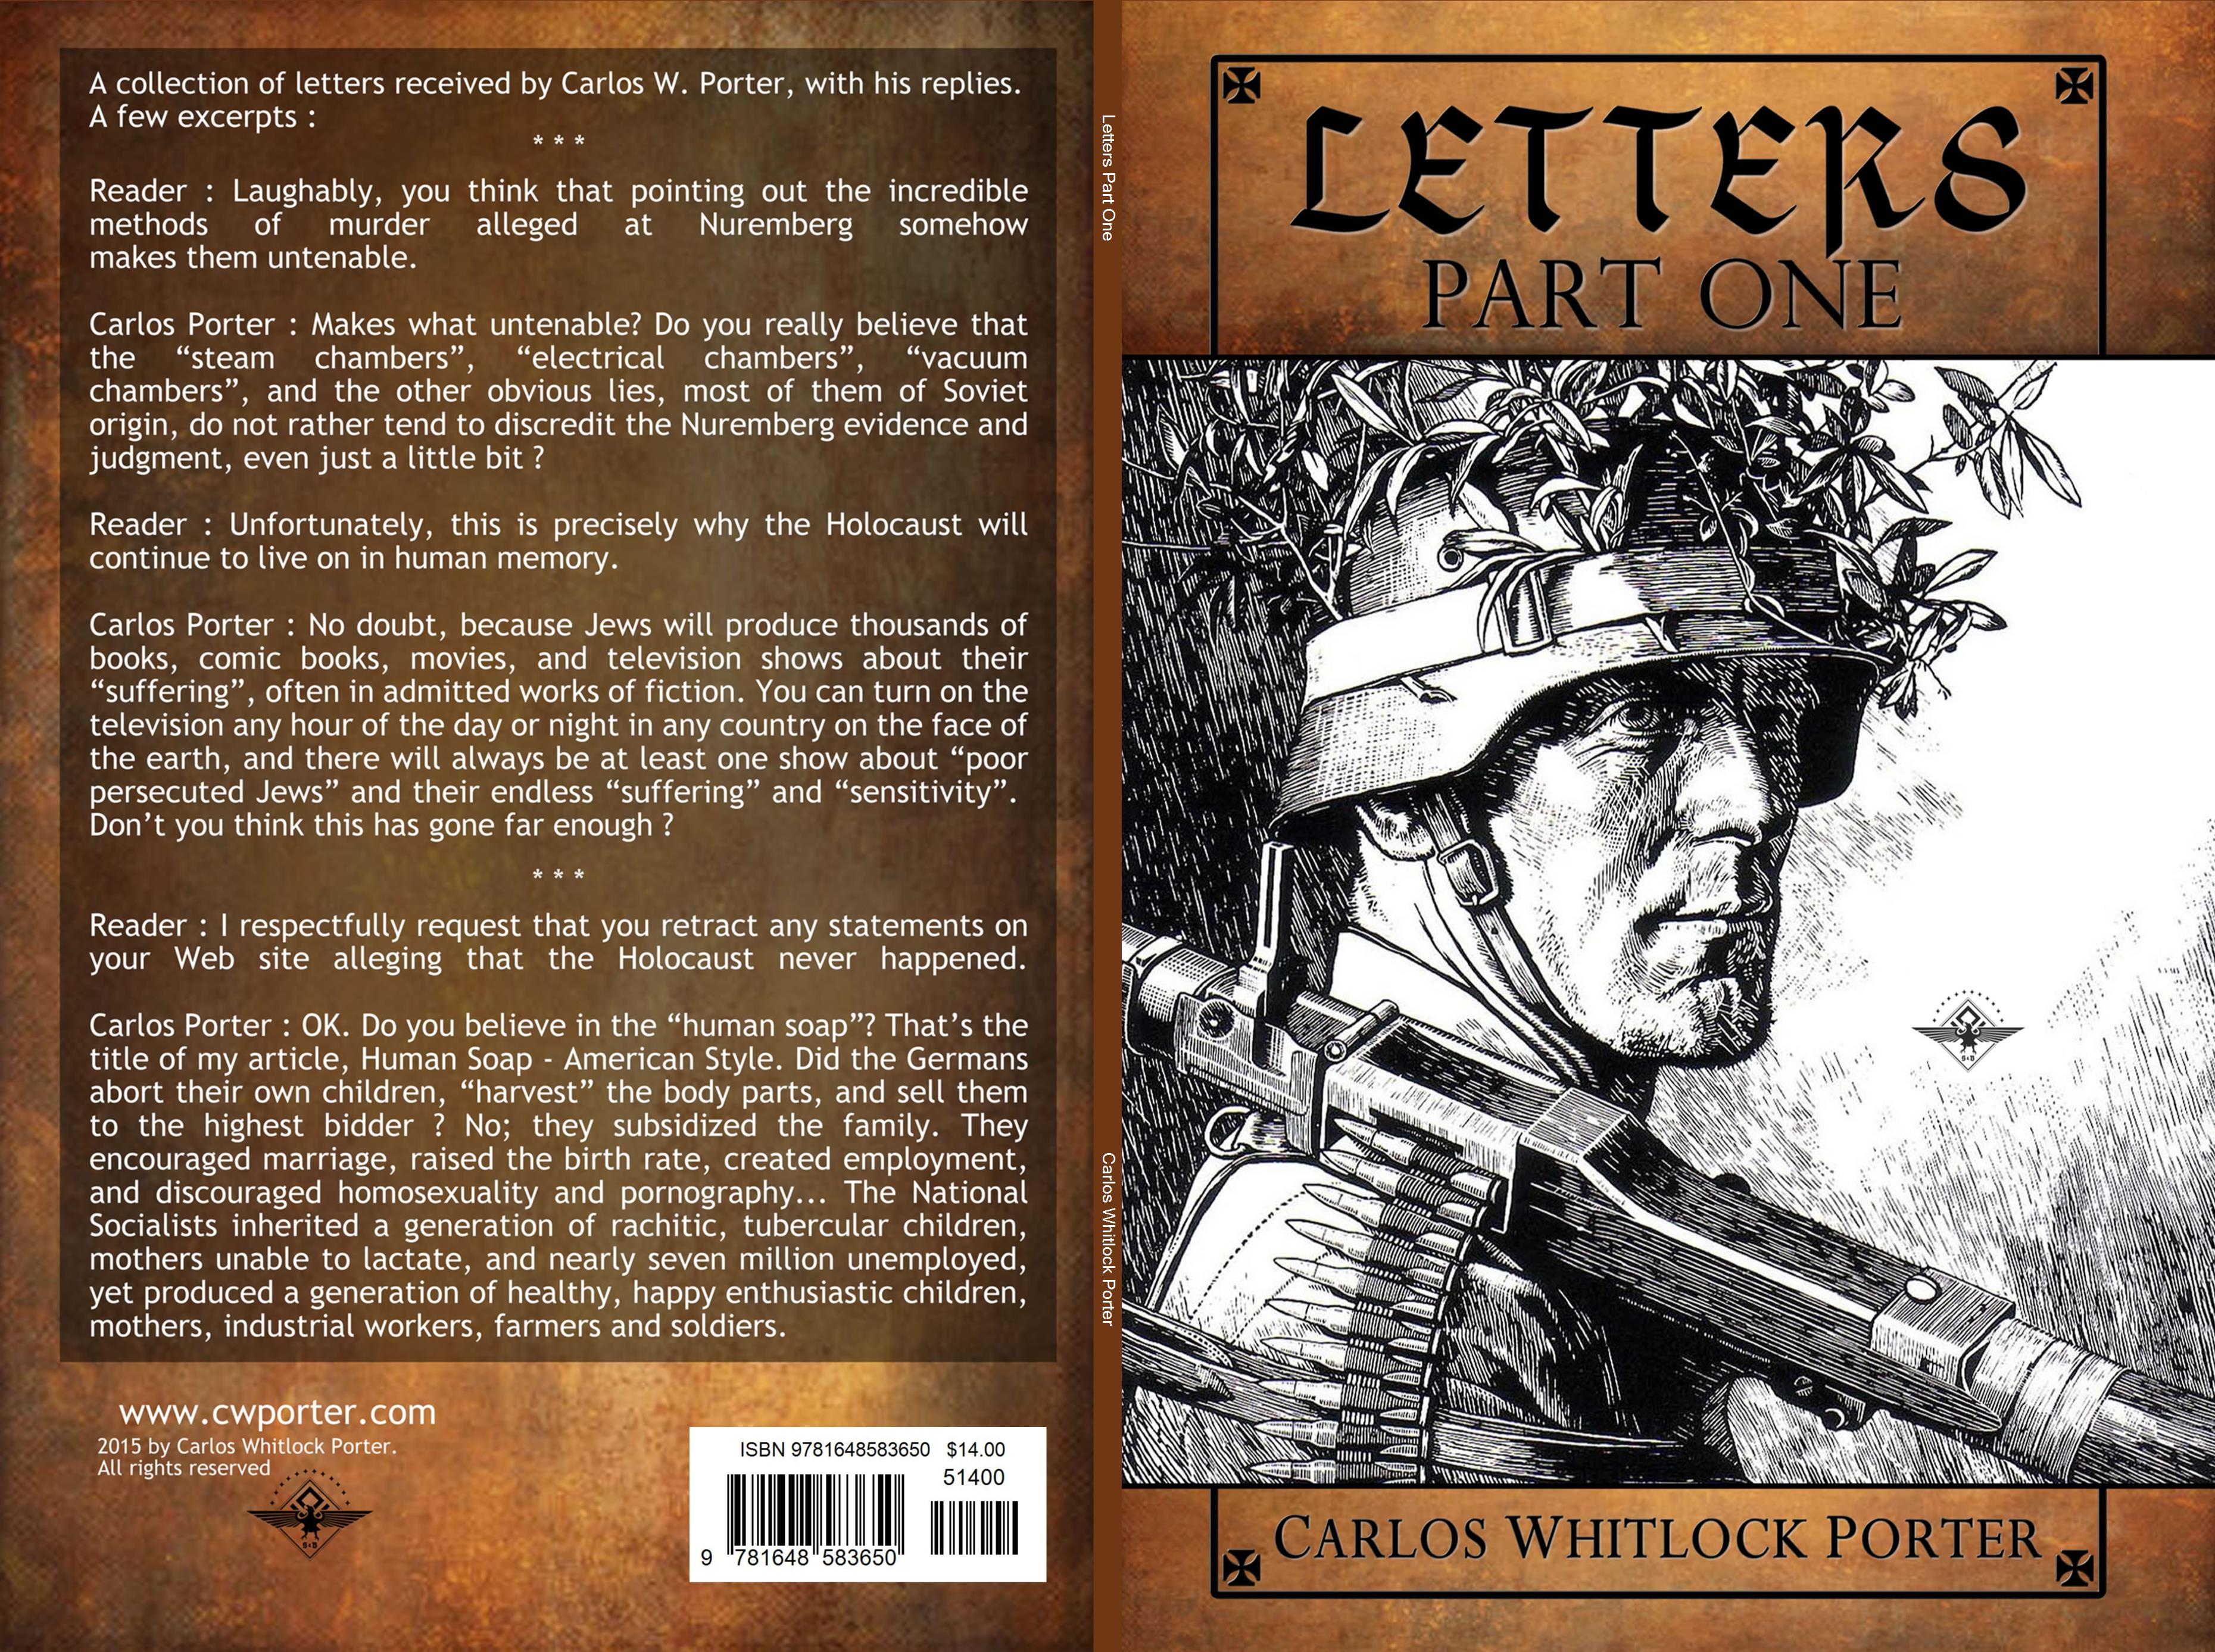 Letters Part One cover image